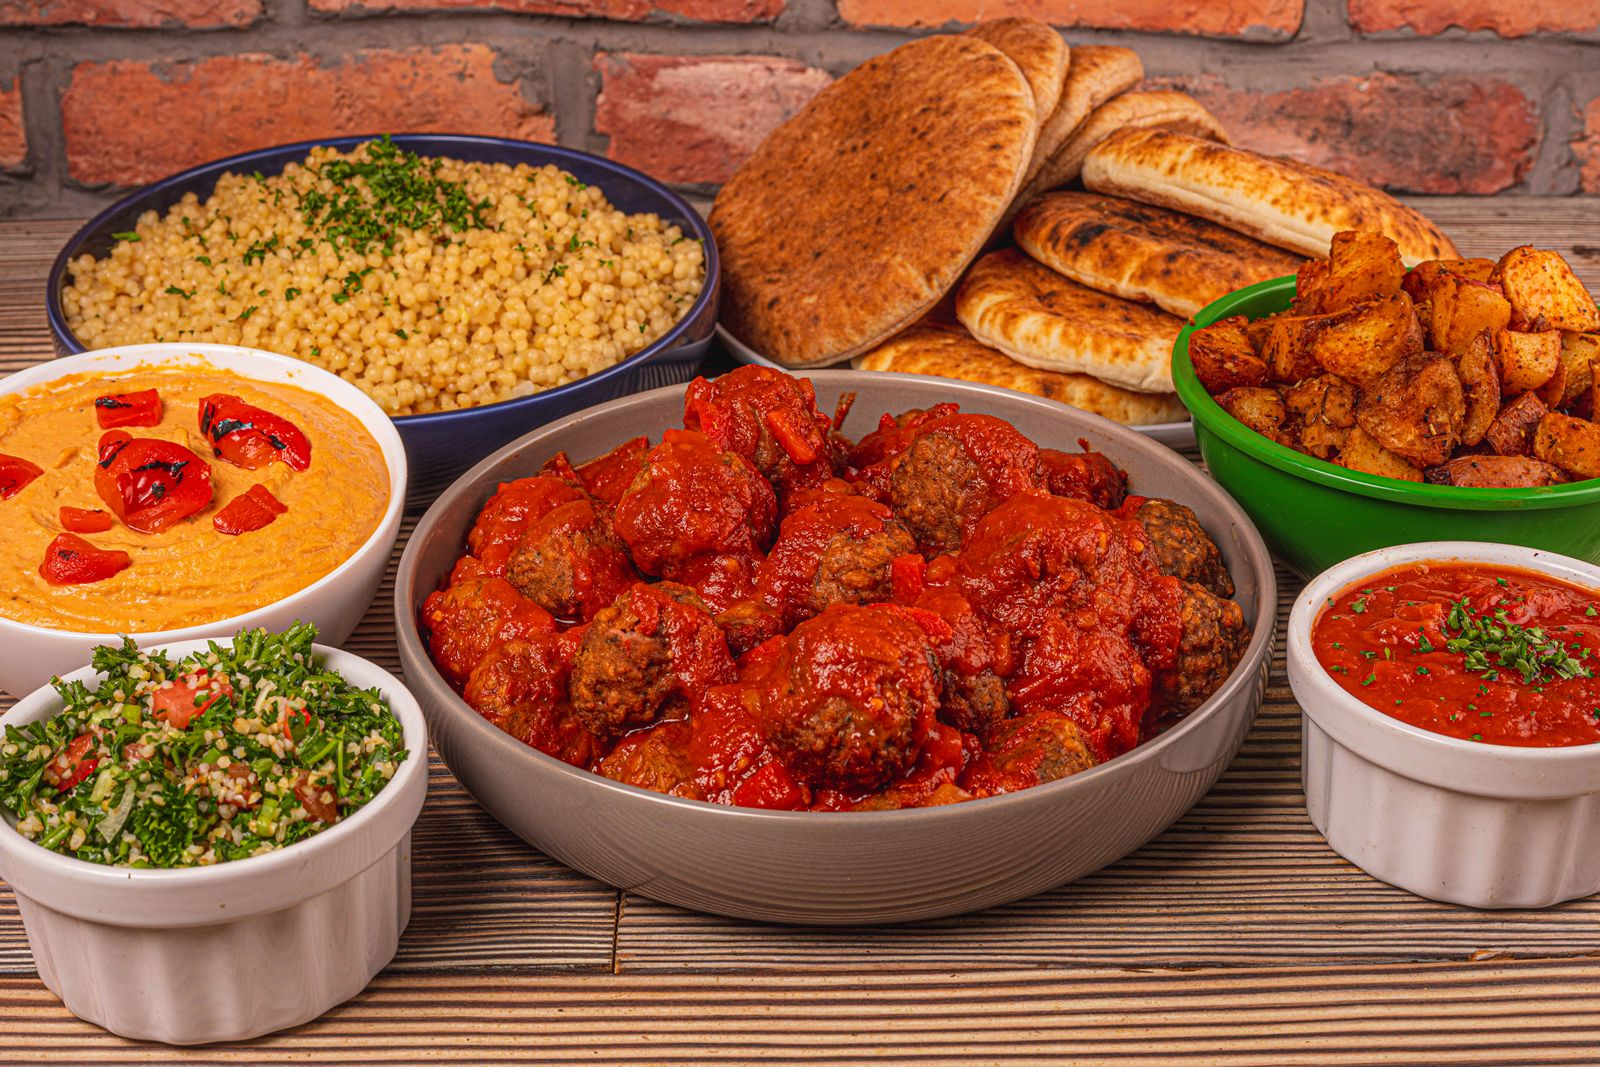 The Hummus & Pita Co. officially made the impossible possible with the addition of their 100% plant-based Vegan Moroccan Meatballs.